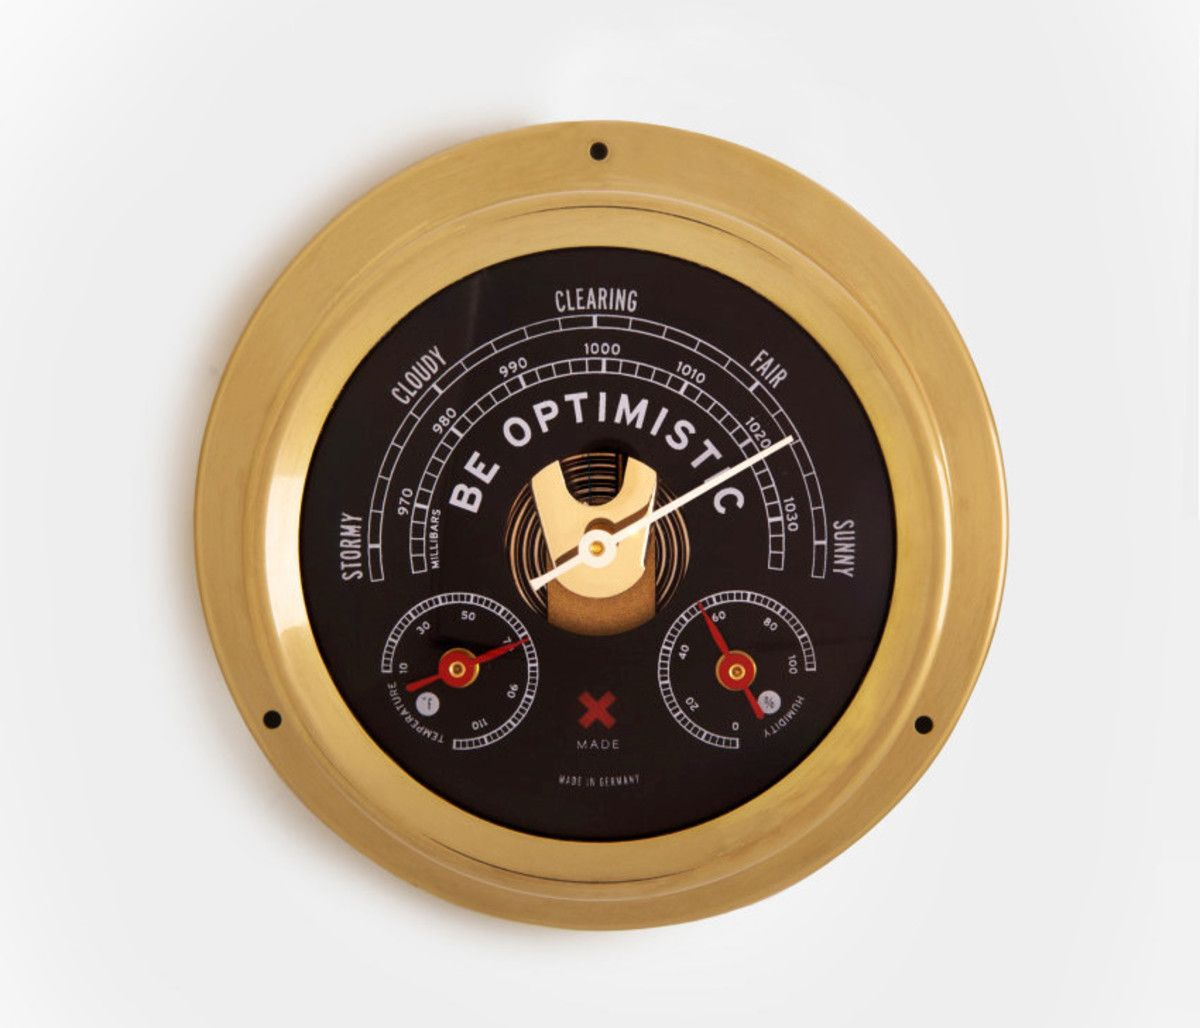 Best Made Releases A New Version Of Their Compact Weather Station Weather Station Cool Things To Make Weather